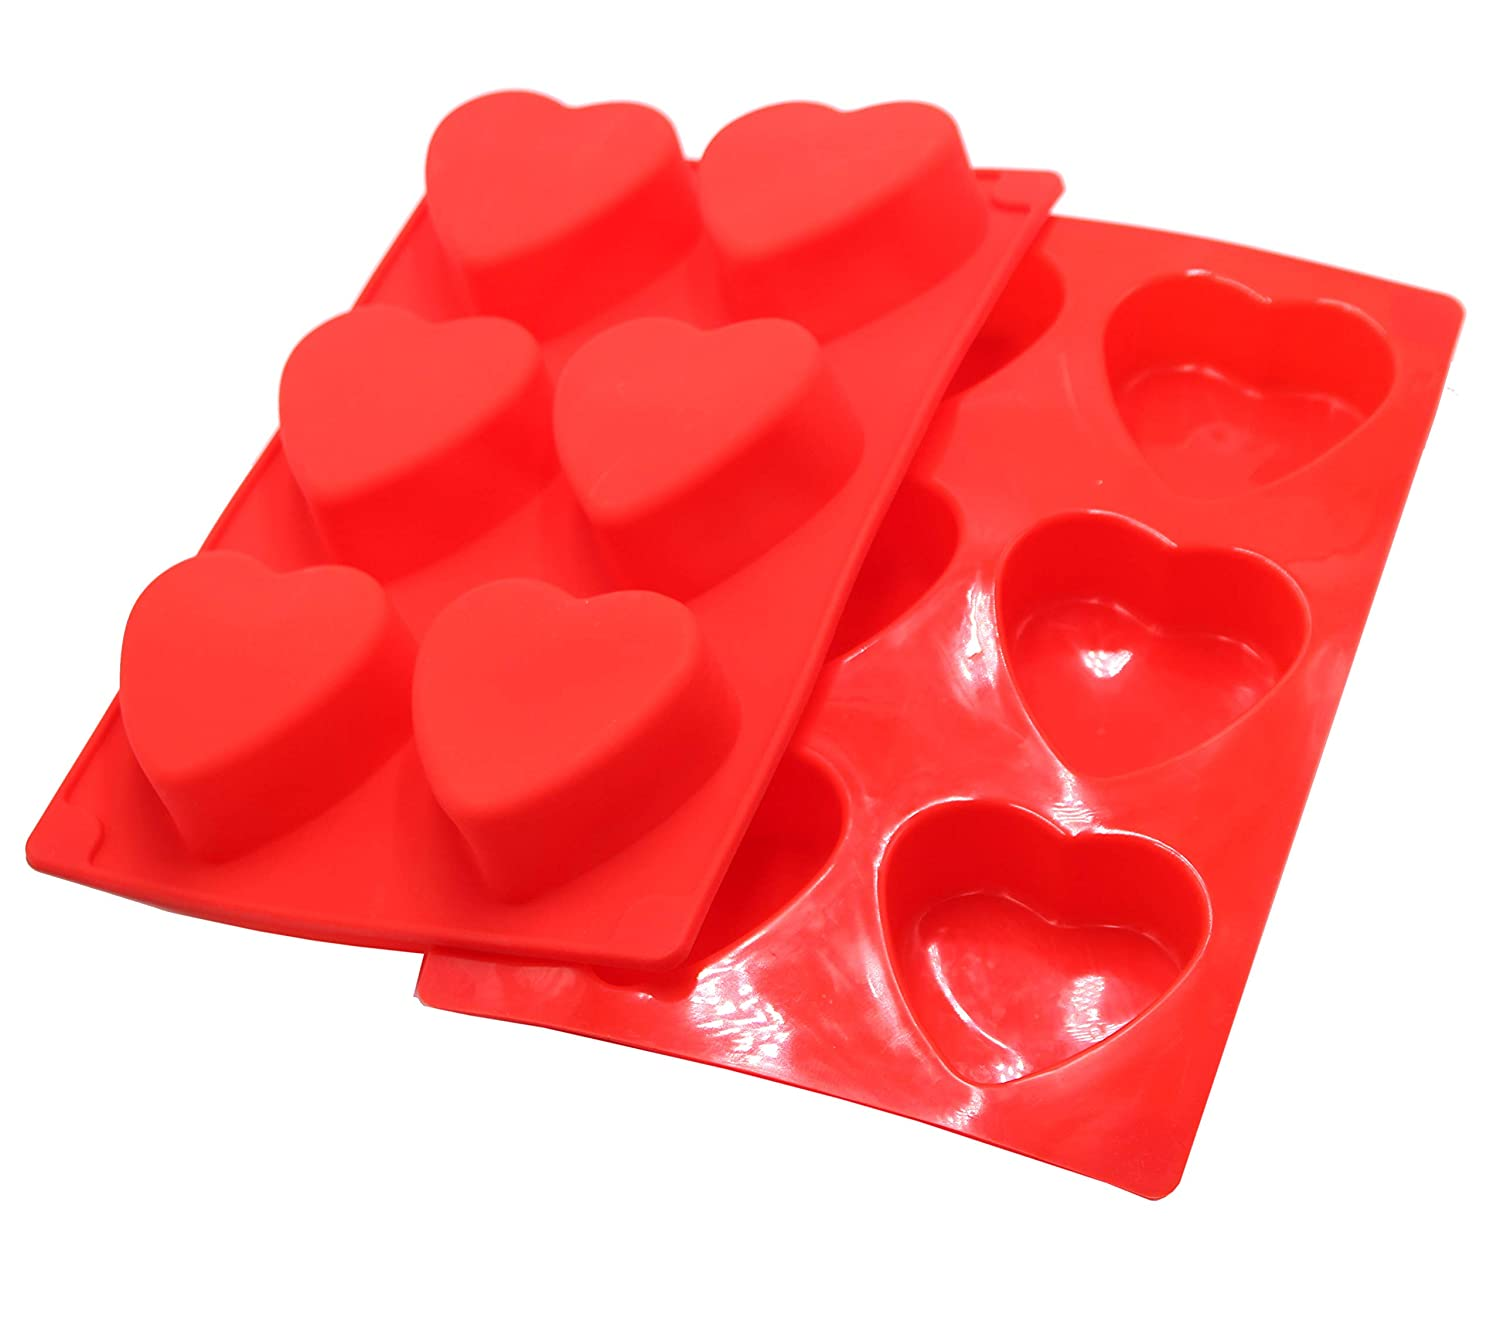 Soap Candles and Jelly 2 Packs Valentines Day Love Heart Shape Molds for Making Handmade Soap 6-Cavity Heart Silicone Mold Red Chocolate